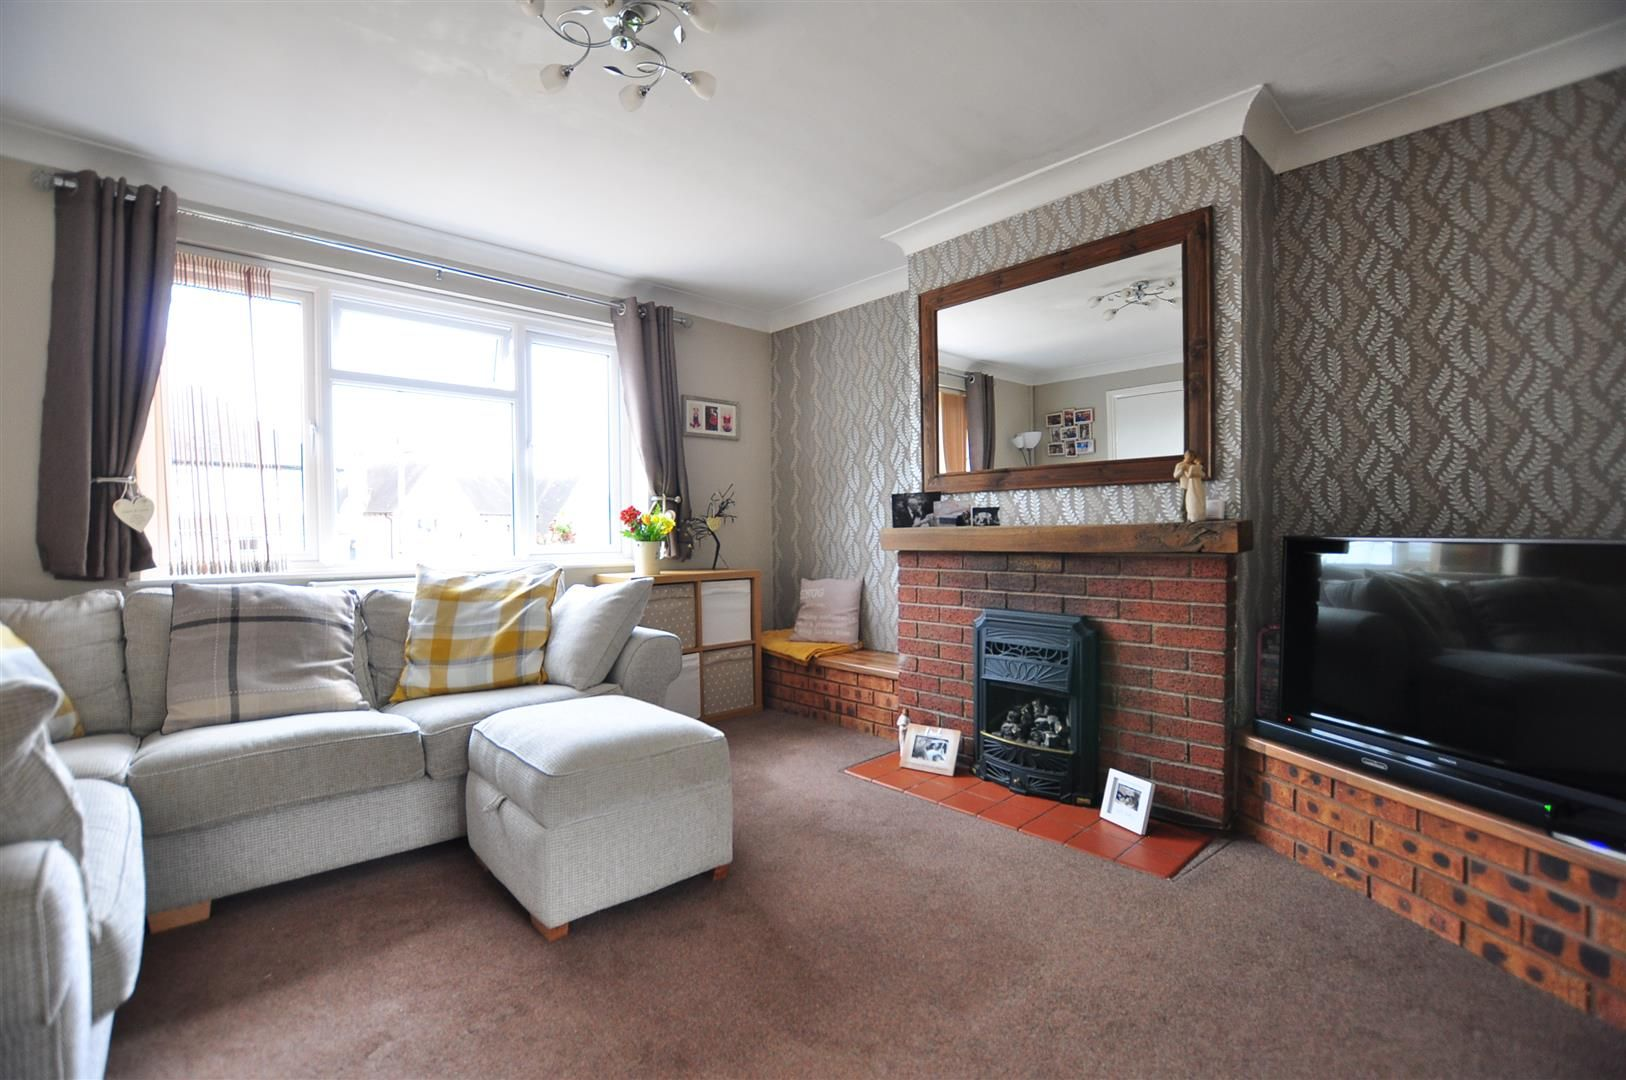 3 bed semi-detached for sale in Romsley 2